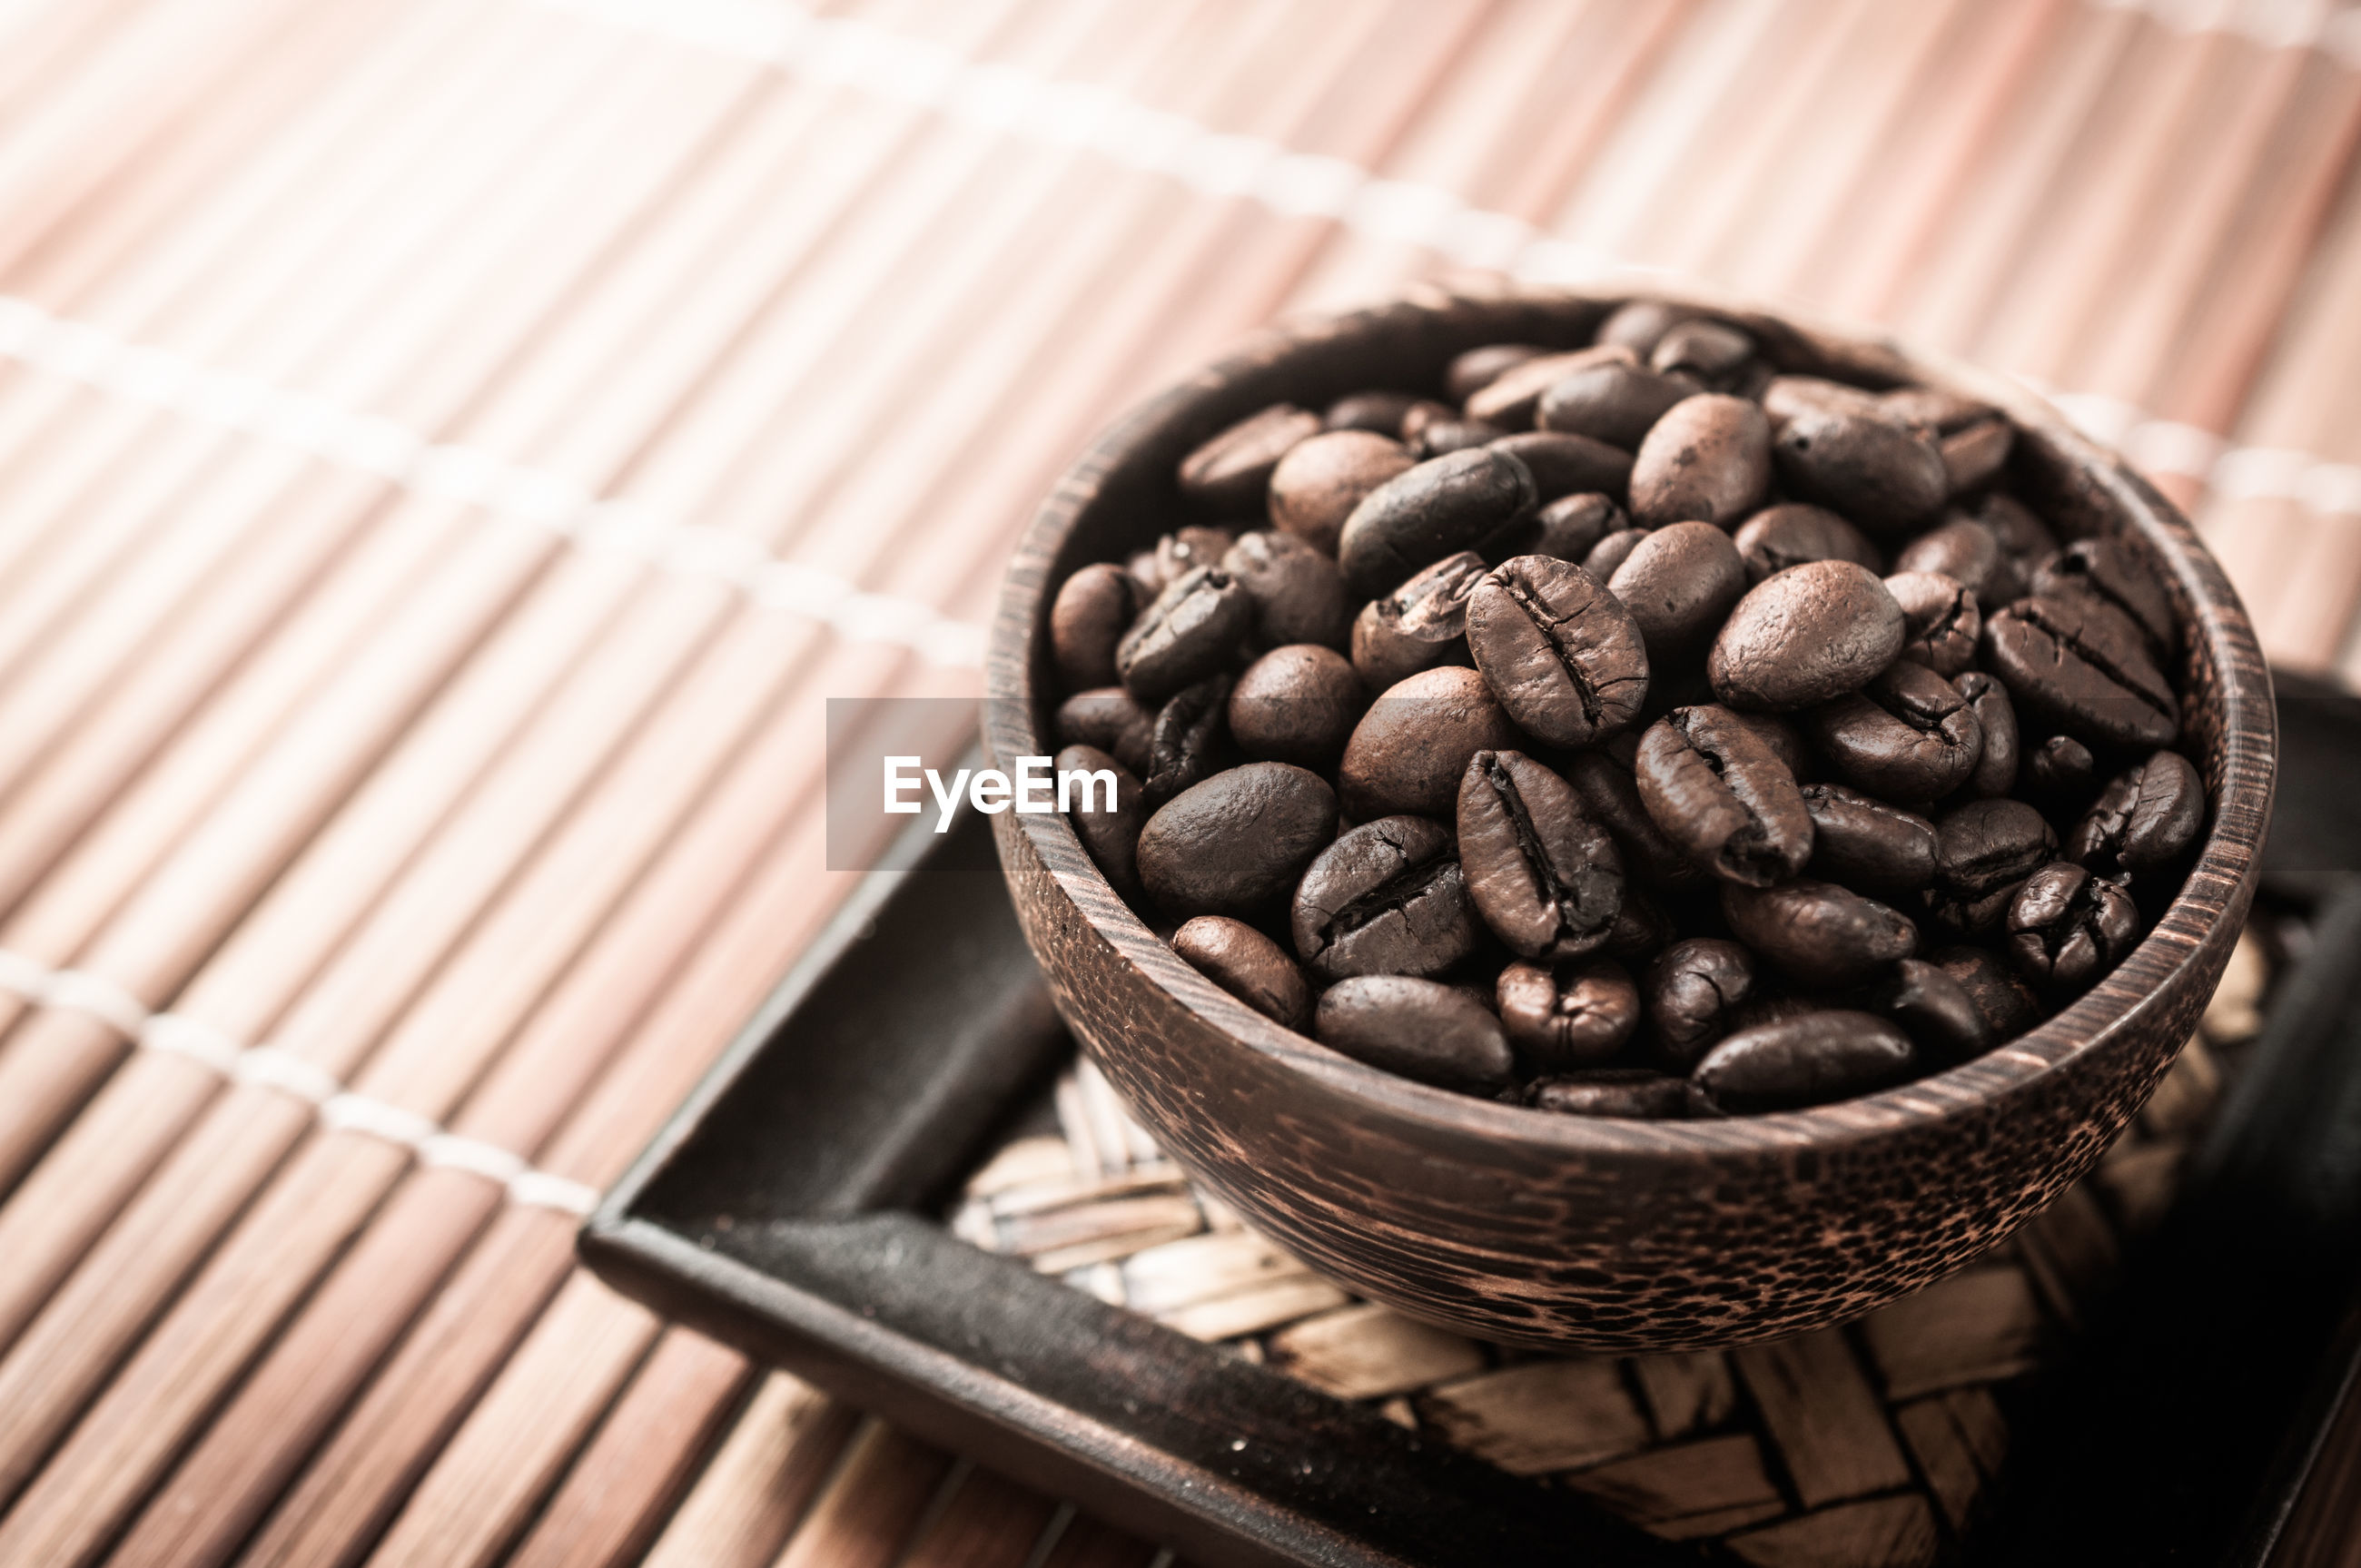 Close-up of roasted coffee beans in bowl on placemat